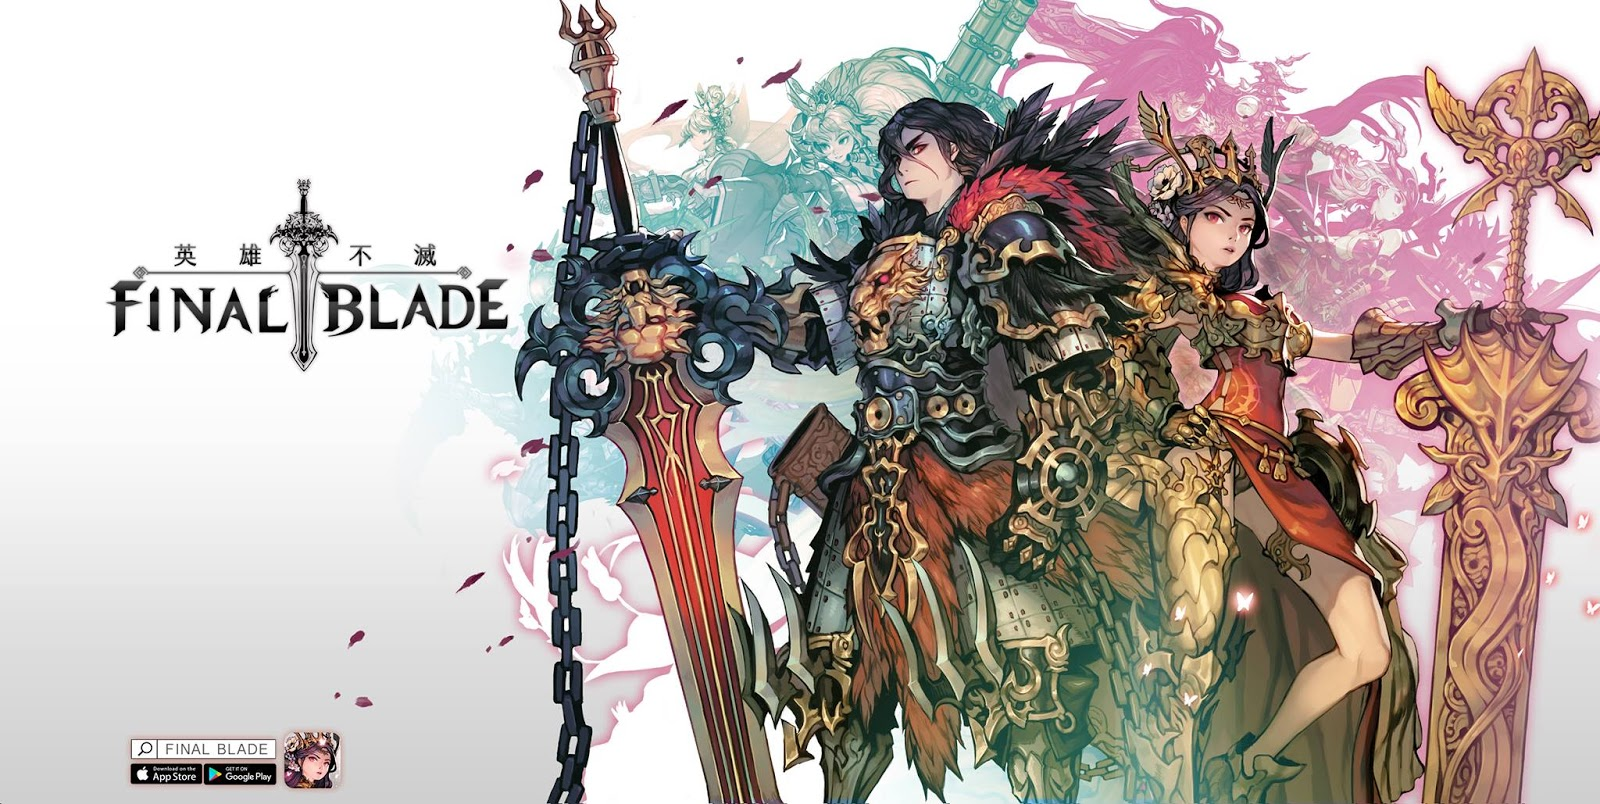 Final Blade - Taiwanese Server, Global Server, Blockchain